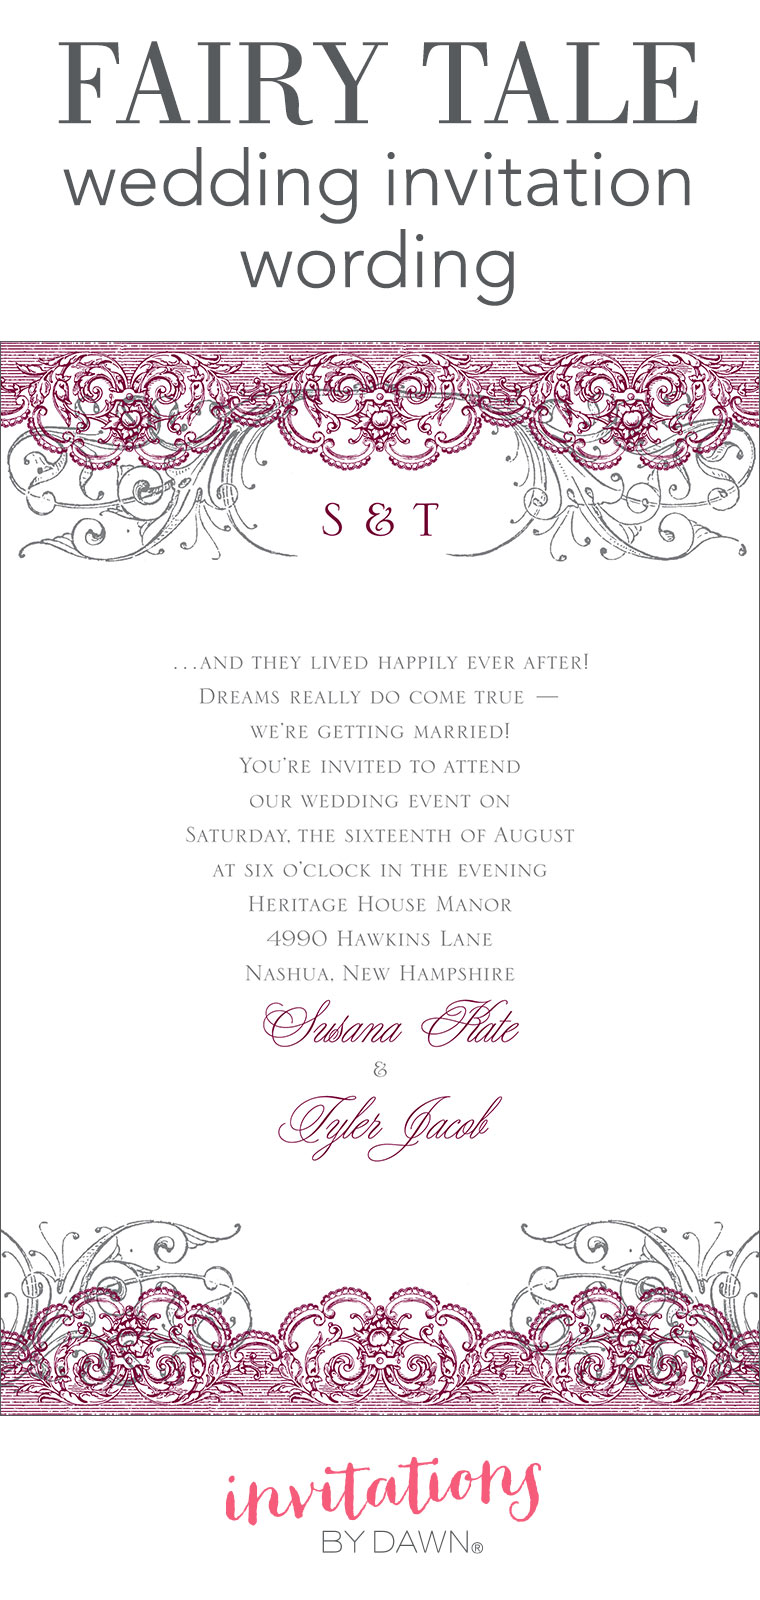 Fairy tale wedding invitation wording invitations by dawn stopboris Choice Image